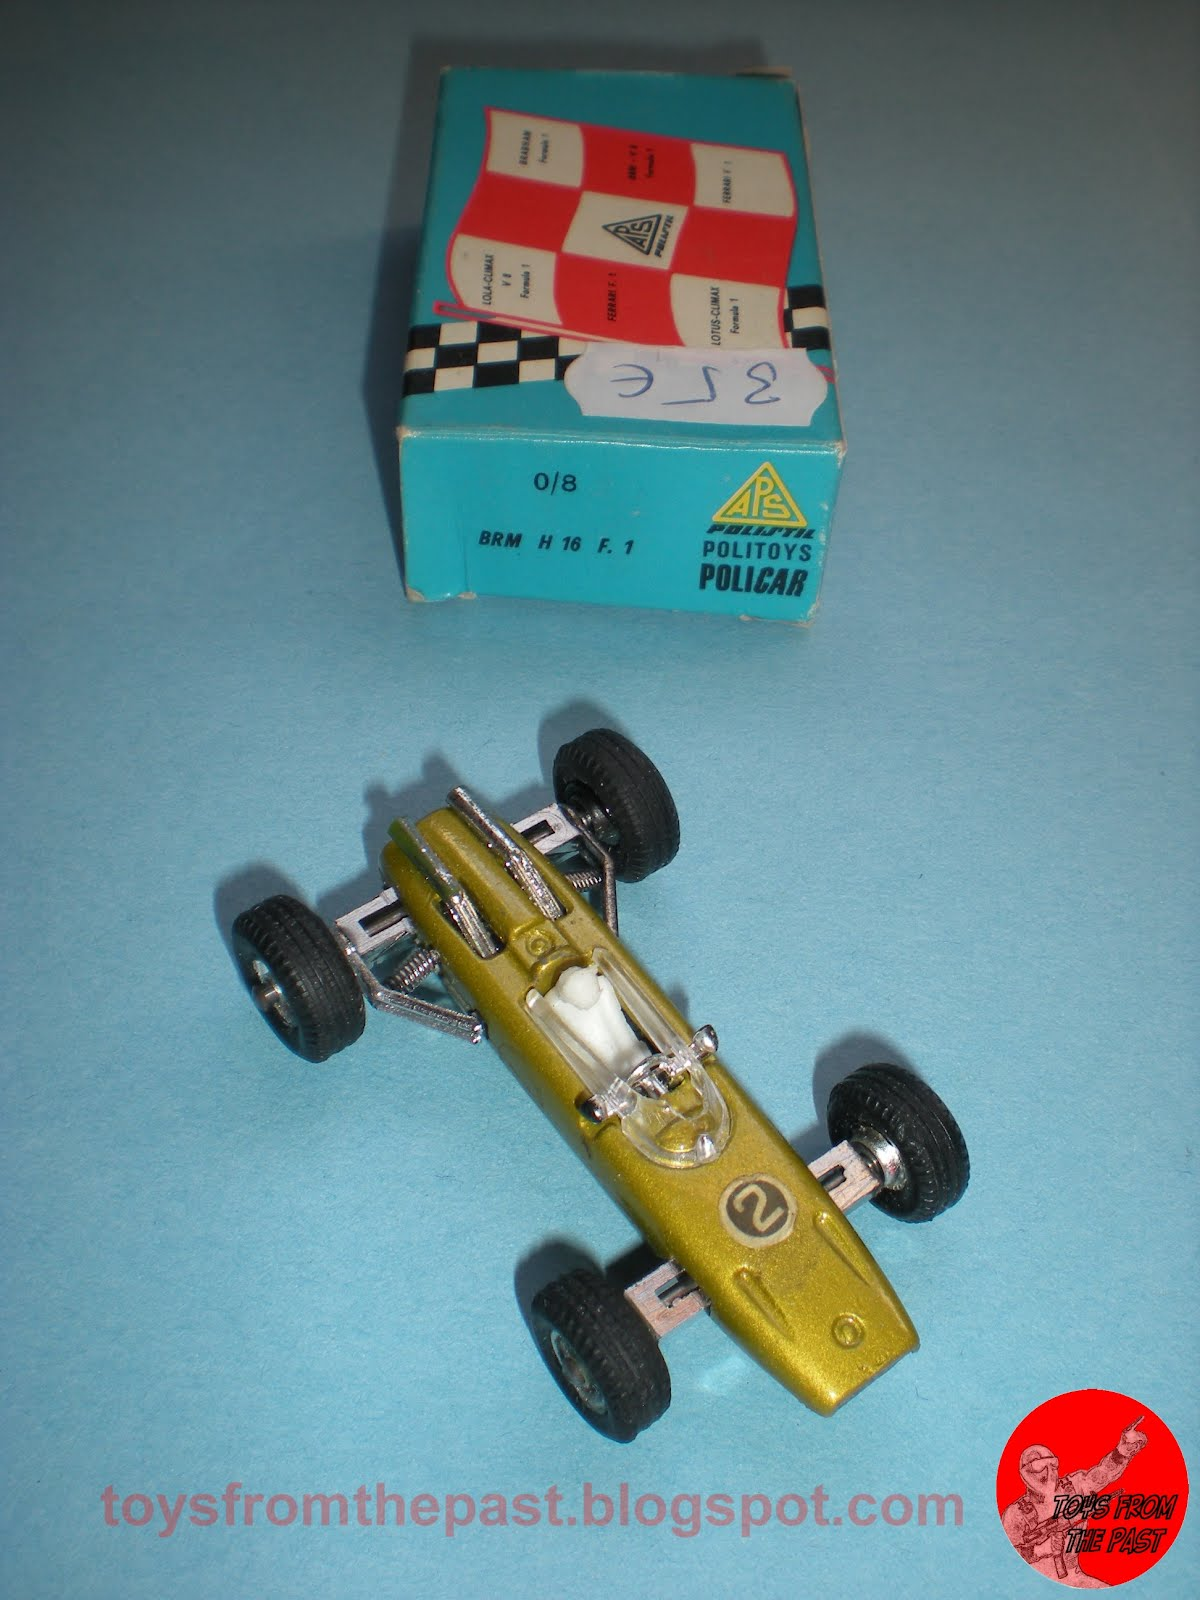 Penny 0/8 BRM H 16 F1 (cc-by-nc-nd 3.0 toysfromthepast)